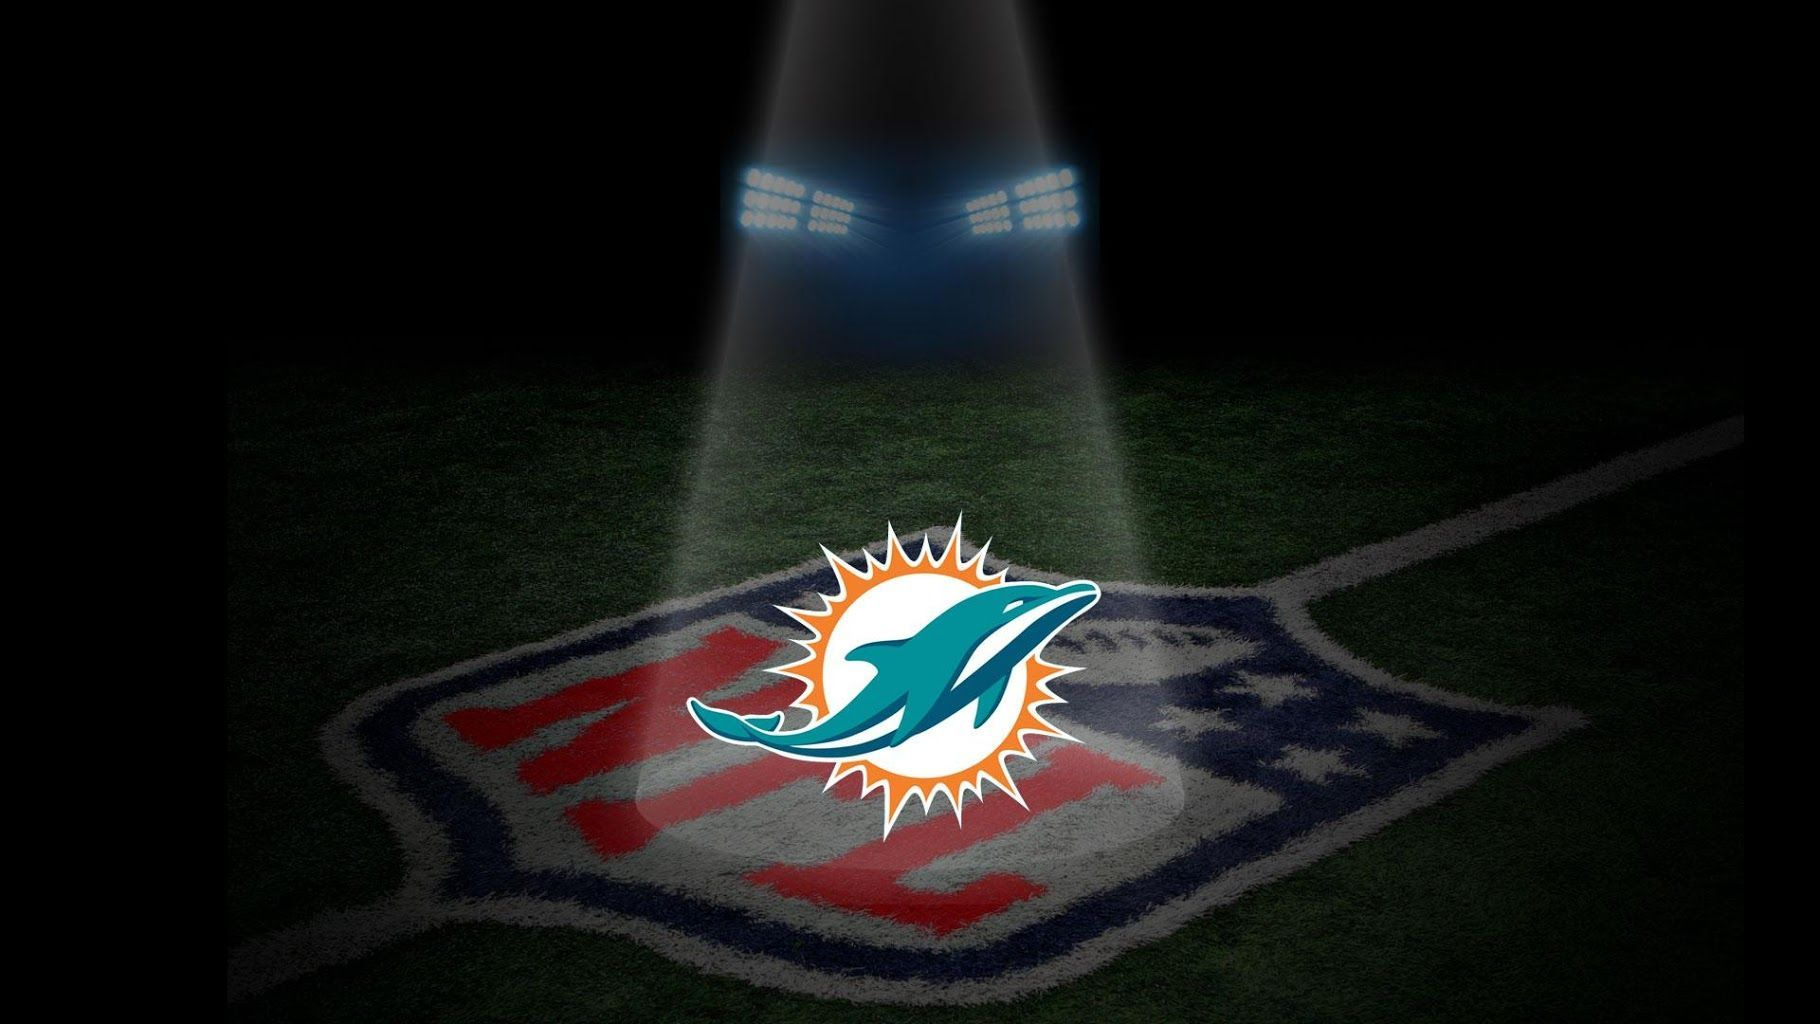 Fins ftw miami dolphins blog free miami dolphins wallpaper joey miami dolphins blog free miami dolphins wallpaper joey download wallpaper pinterest wallpaper voltagebd Gallery